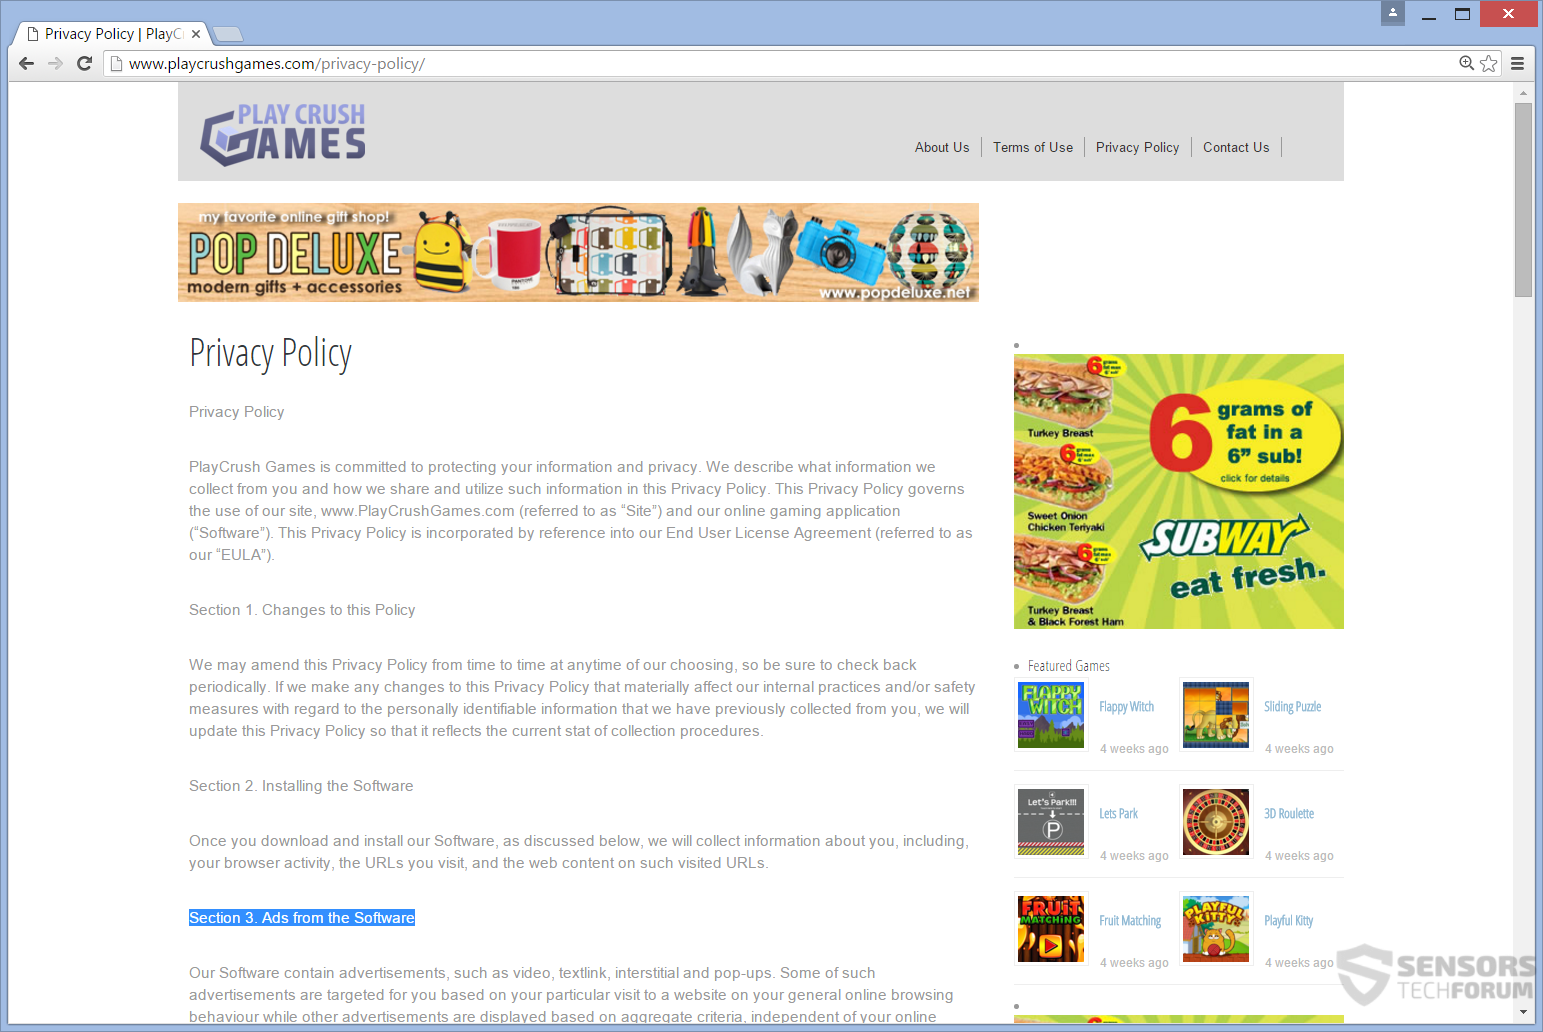 STF-playcrushgames-play-crush-games-privacy-policy